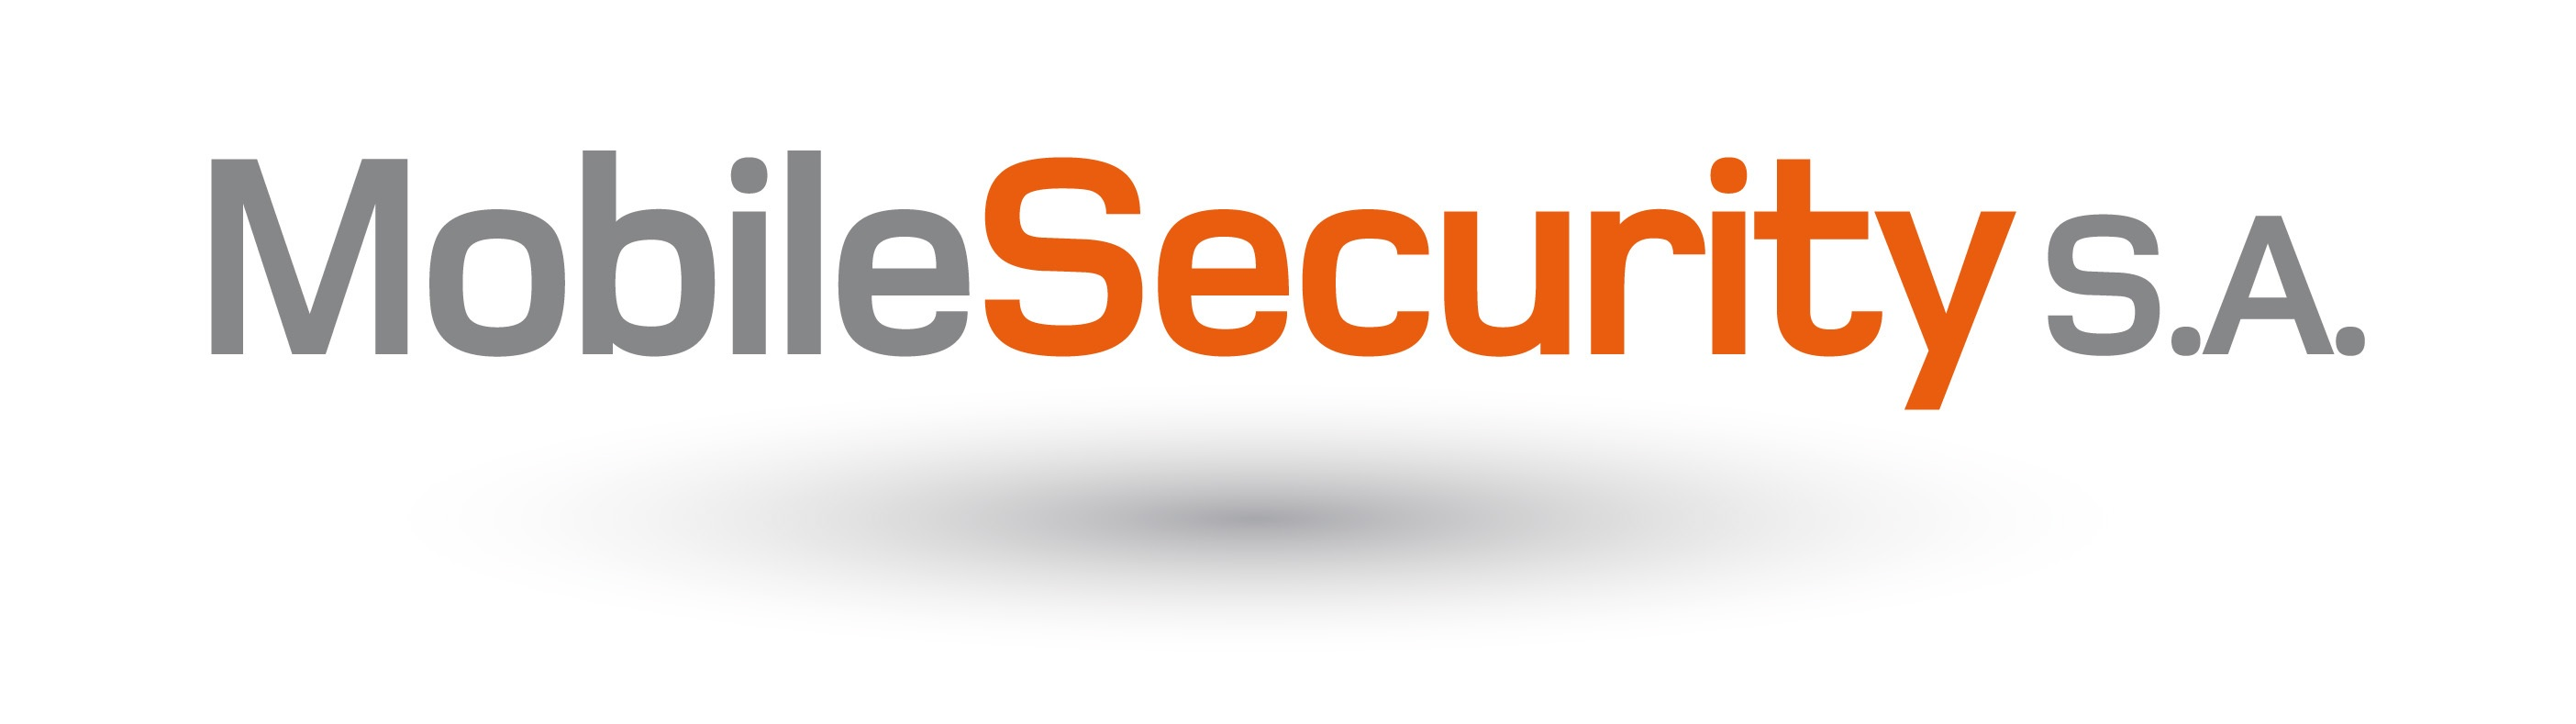 Mobile Security, S.A.